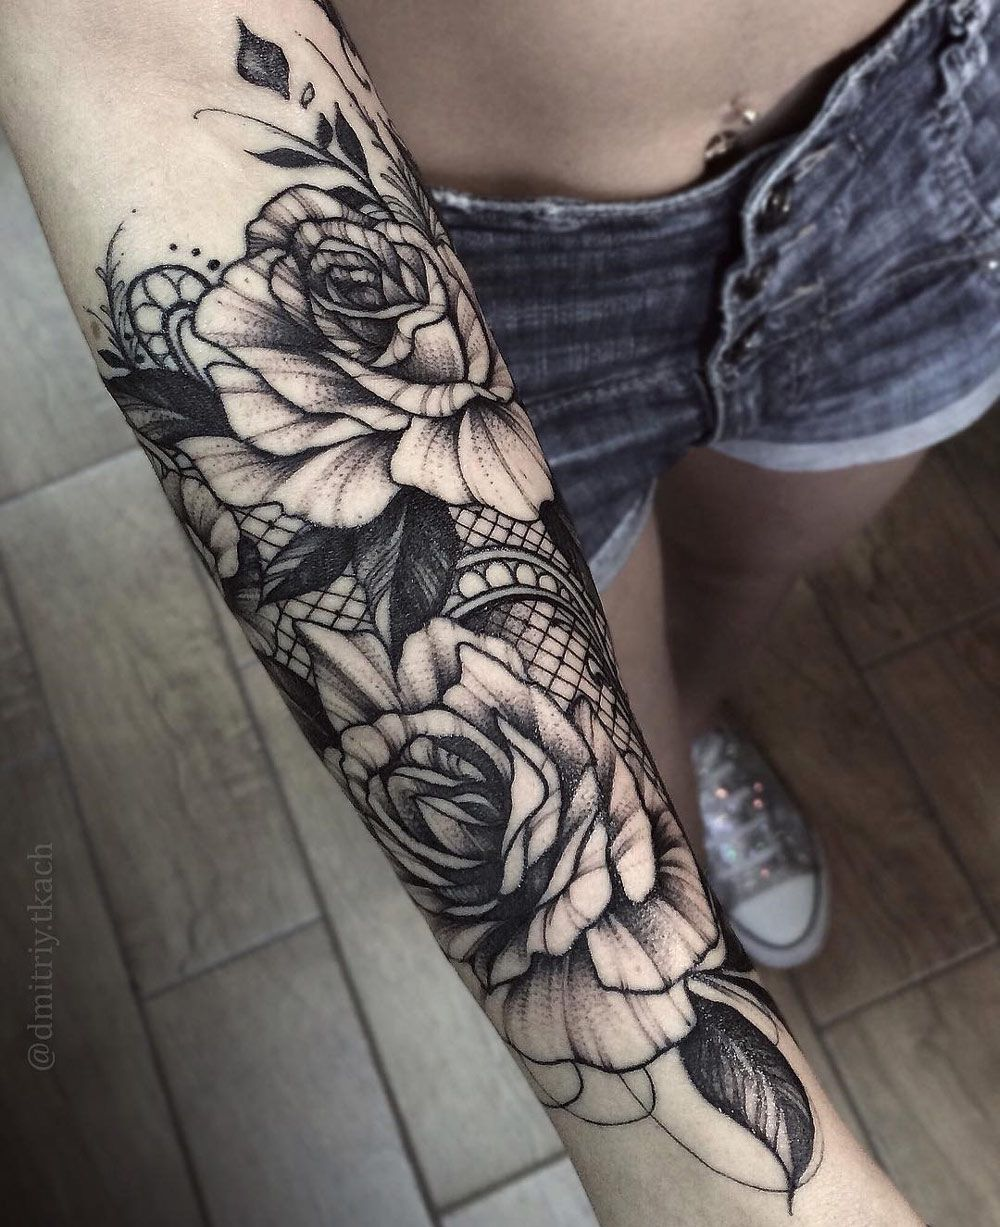 Clock forearm black rose sleeve tattoo - Follow Me For More Sandrushka21 Roses Lace Tattoo Tattoo Sleeve Filler Forearm